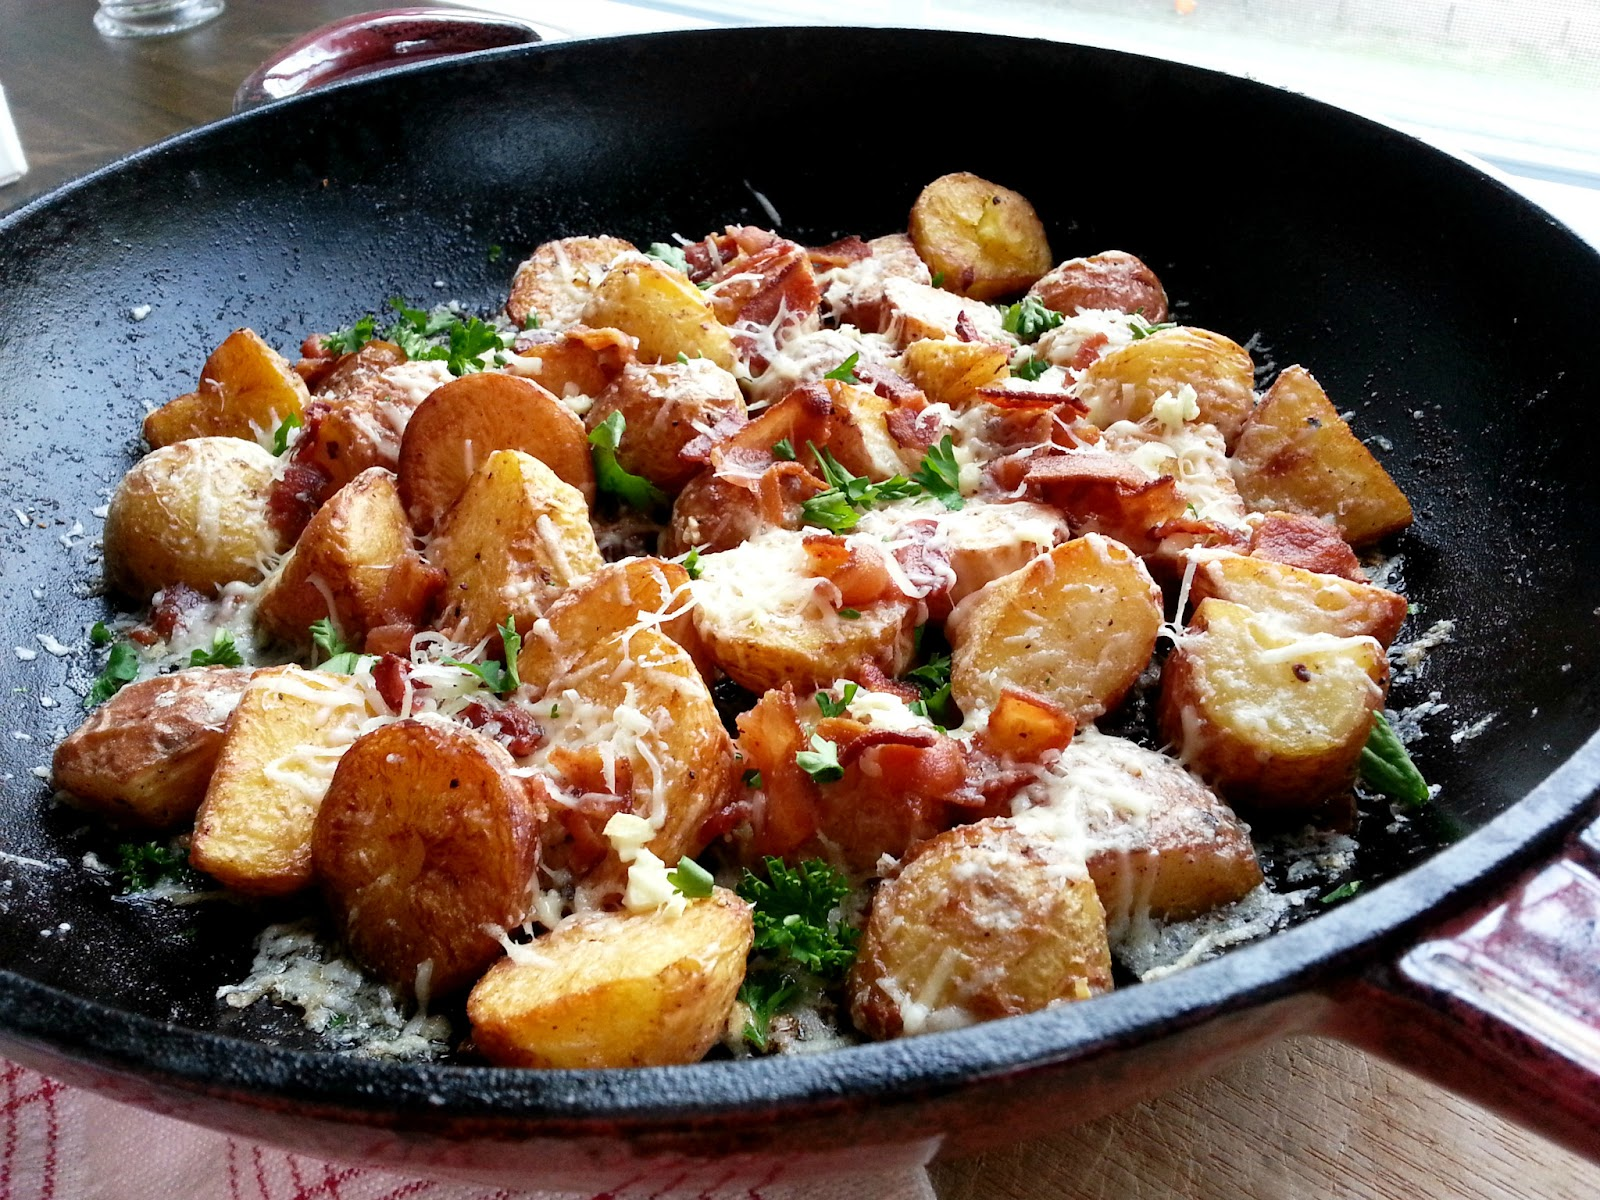 Castellon's Kitchen: Roasted Potatoes with Bacon and Parmesan